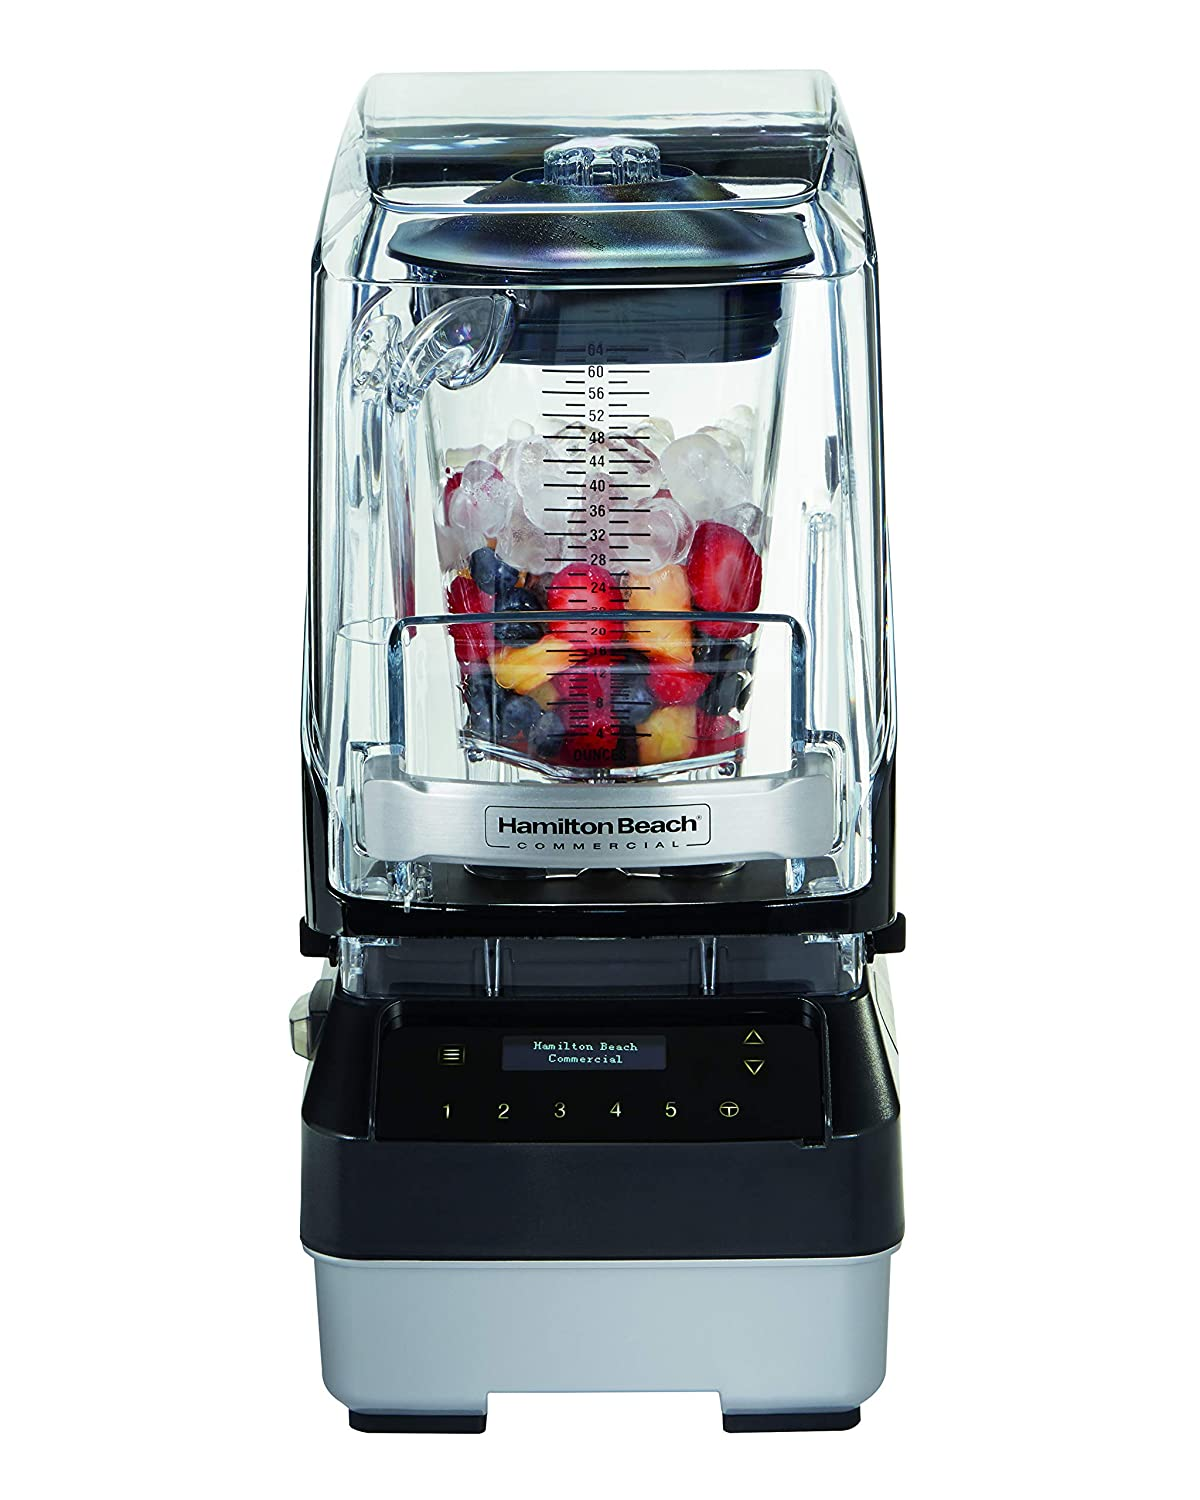 Hamilton Beach Commercial HBH950 Quantum 950 High Performance Blender